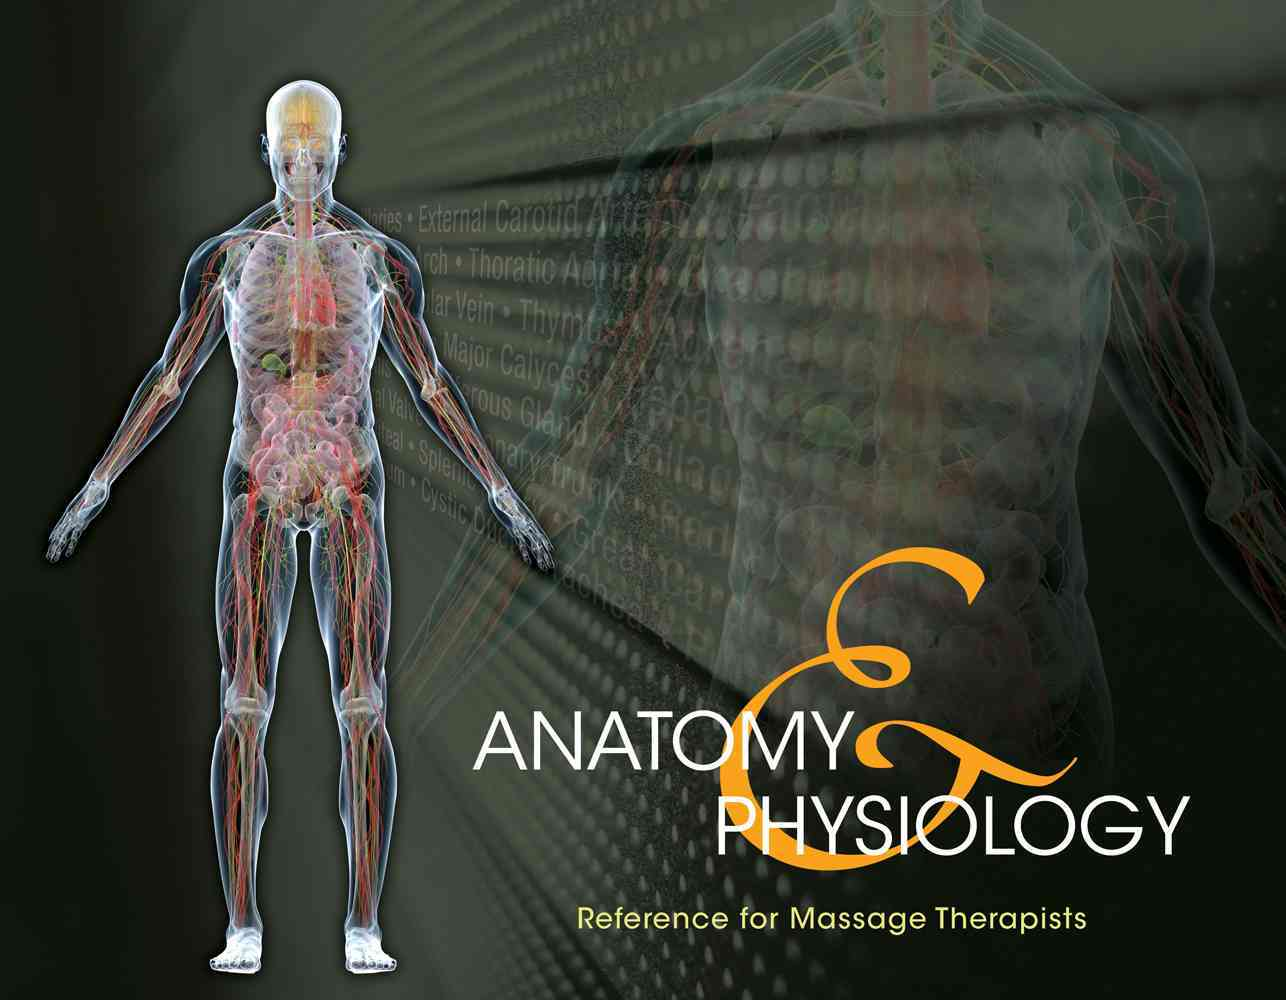 Anatomy & Physiology Reference for Massage Therapists By Milady